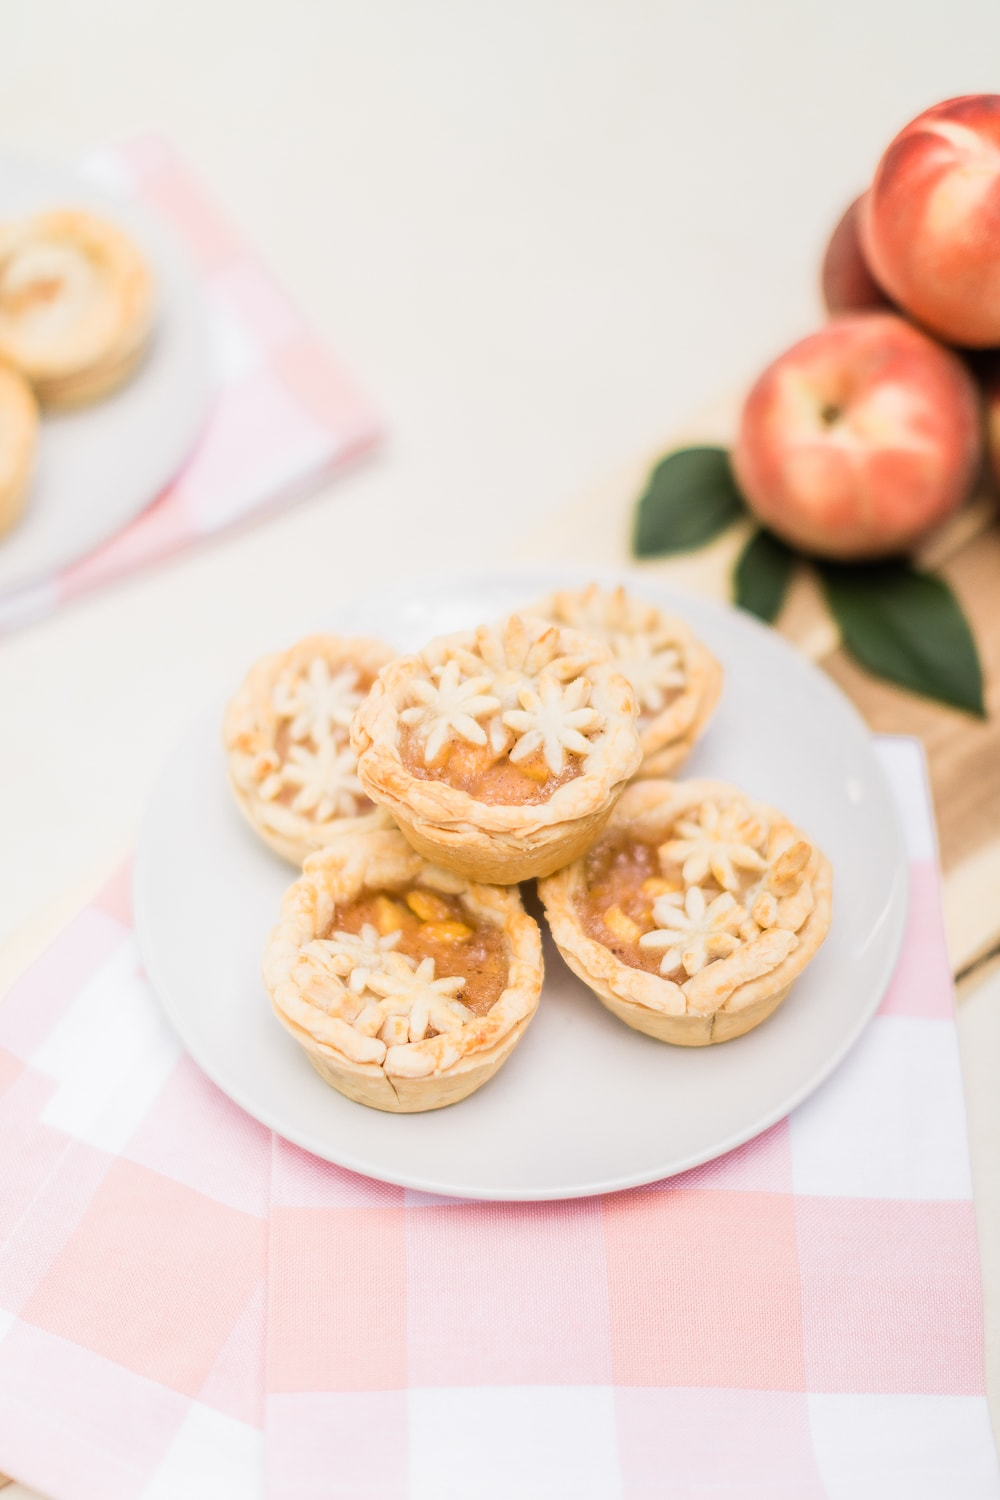 Individual peach pie recipe by southern lifestyle blogger Stephanie Ziajka on Diary of a Debutante